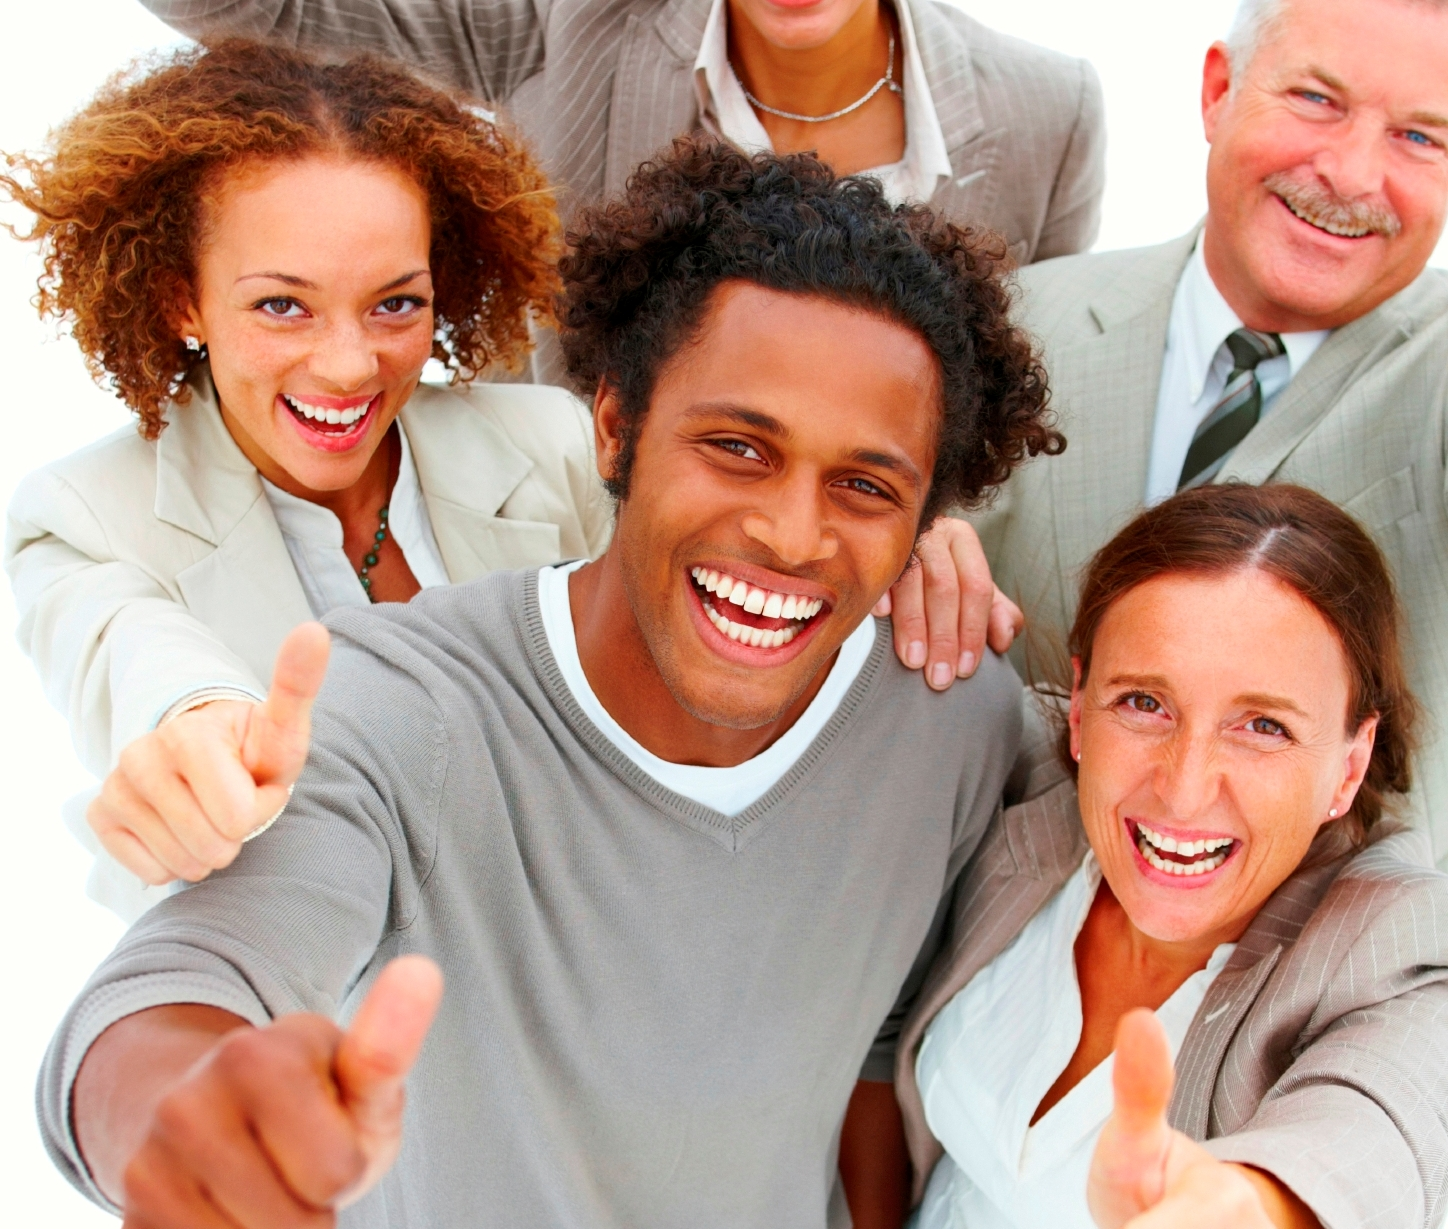 Portrait of happy business people with thumbs up against white background